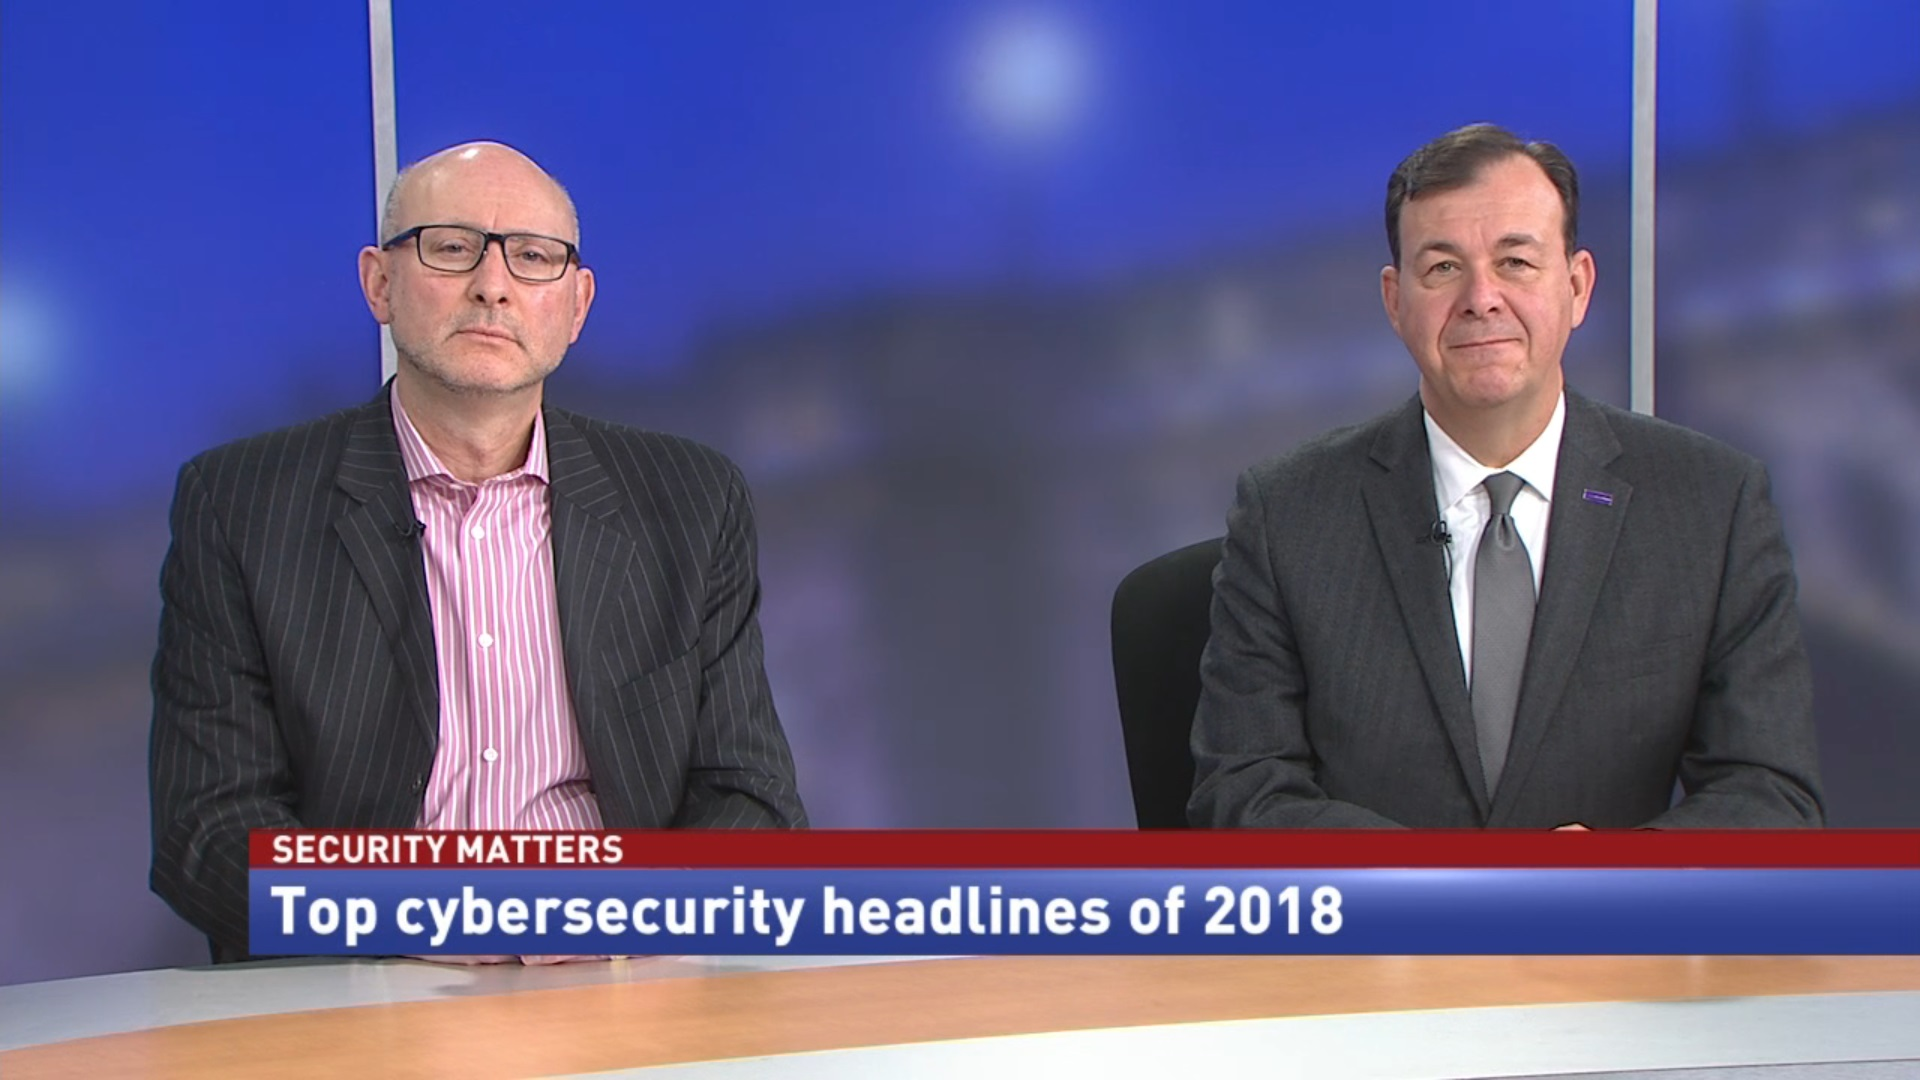 Top cybersecurity headlines of 2018